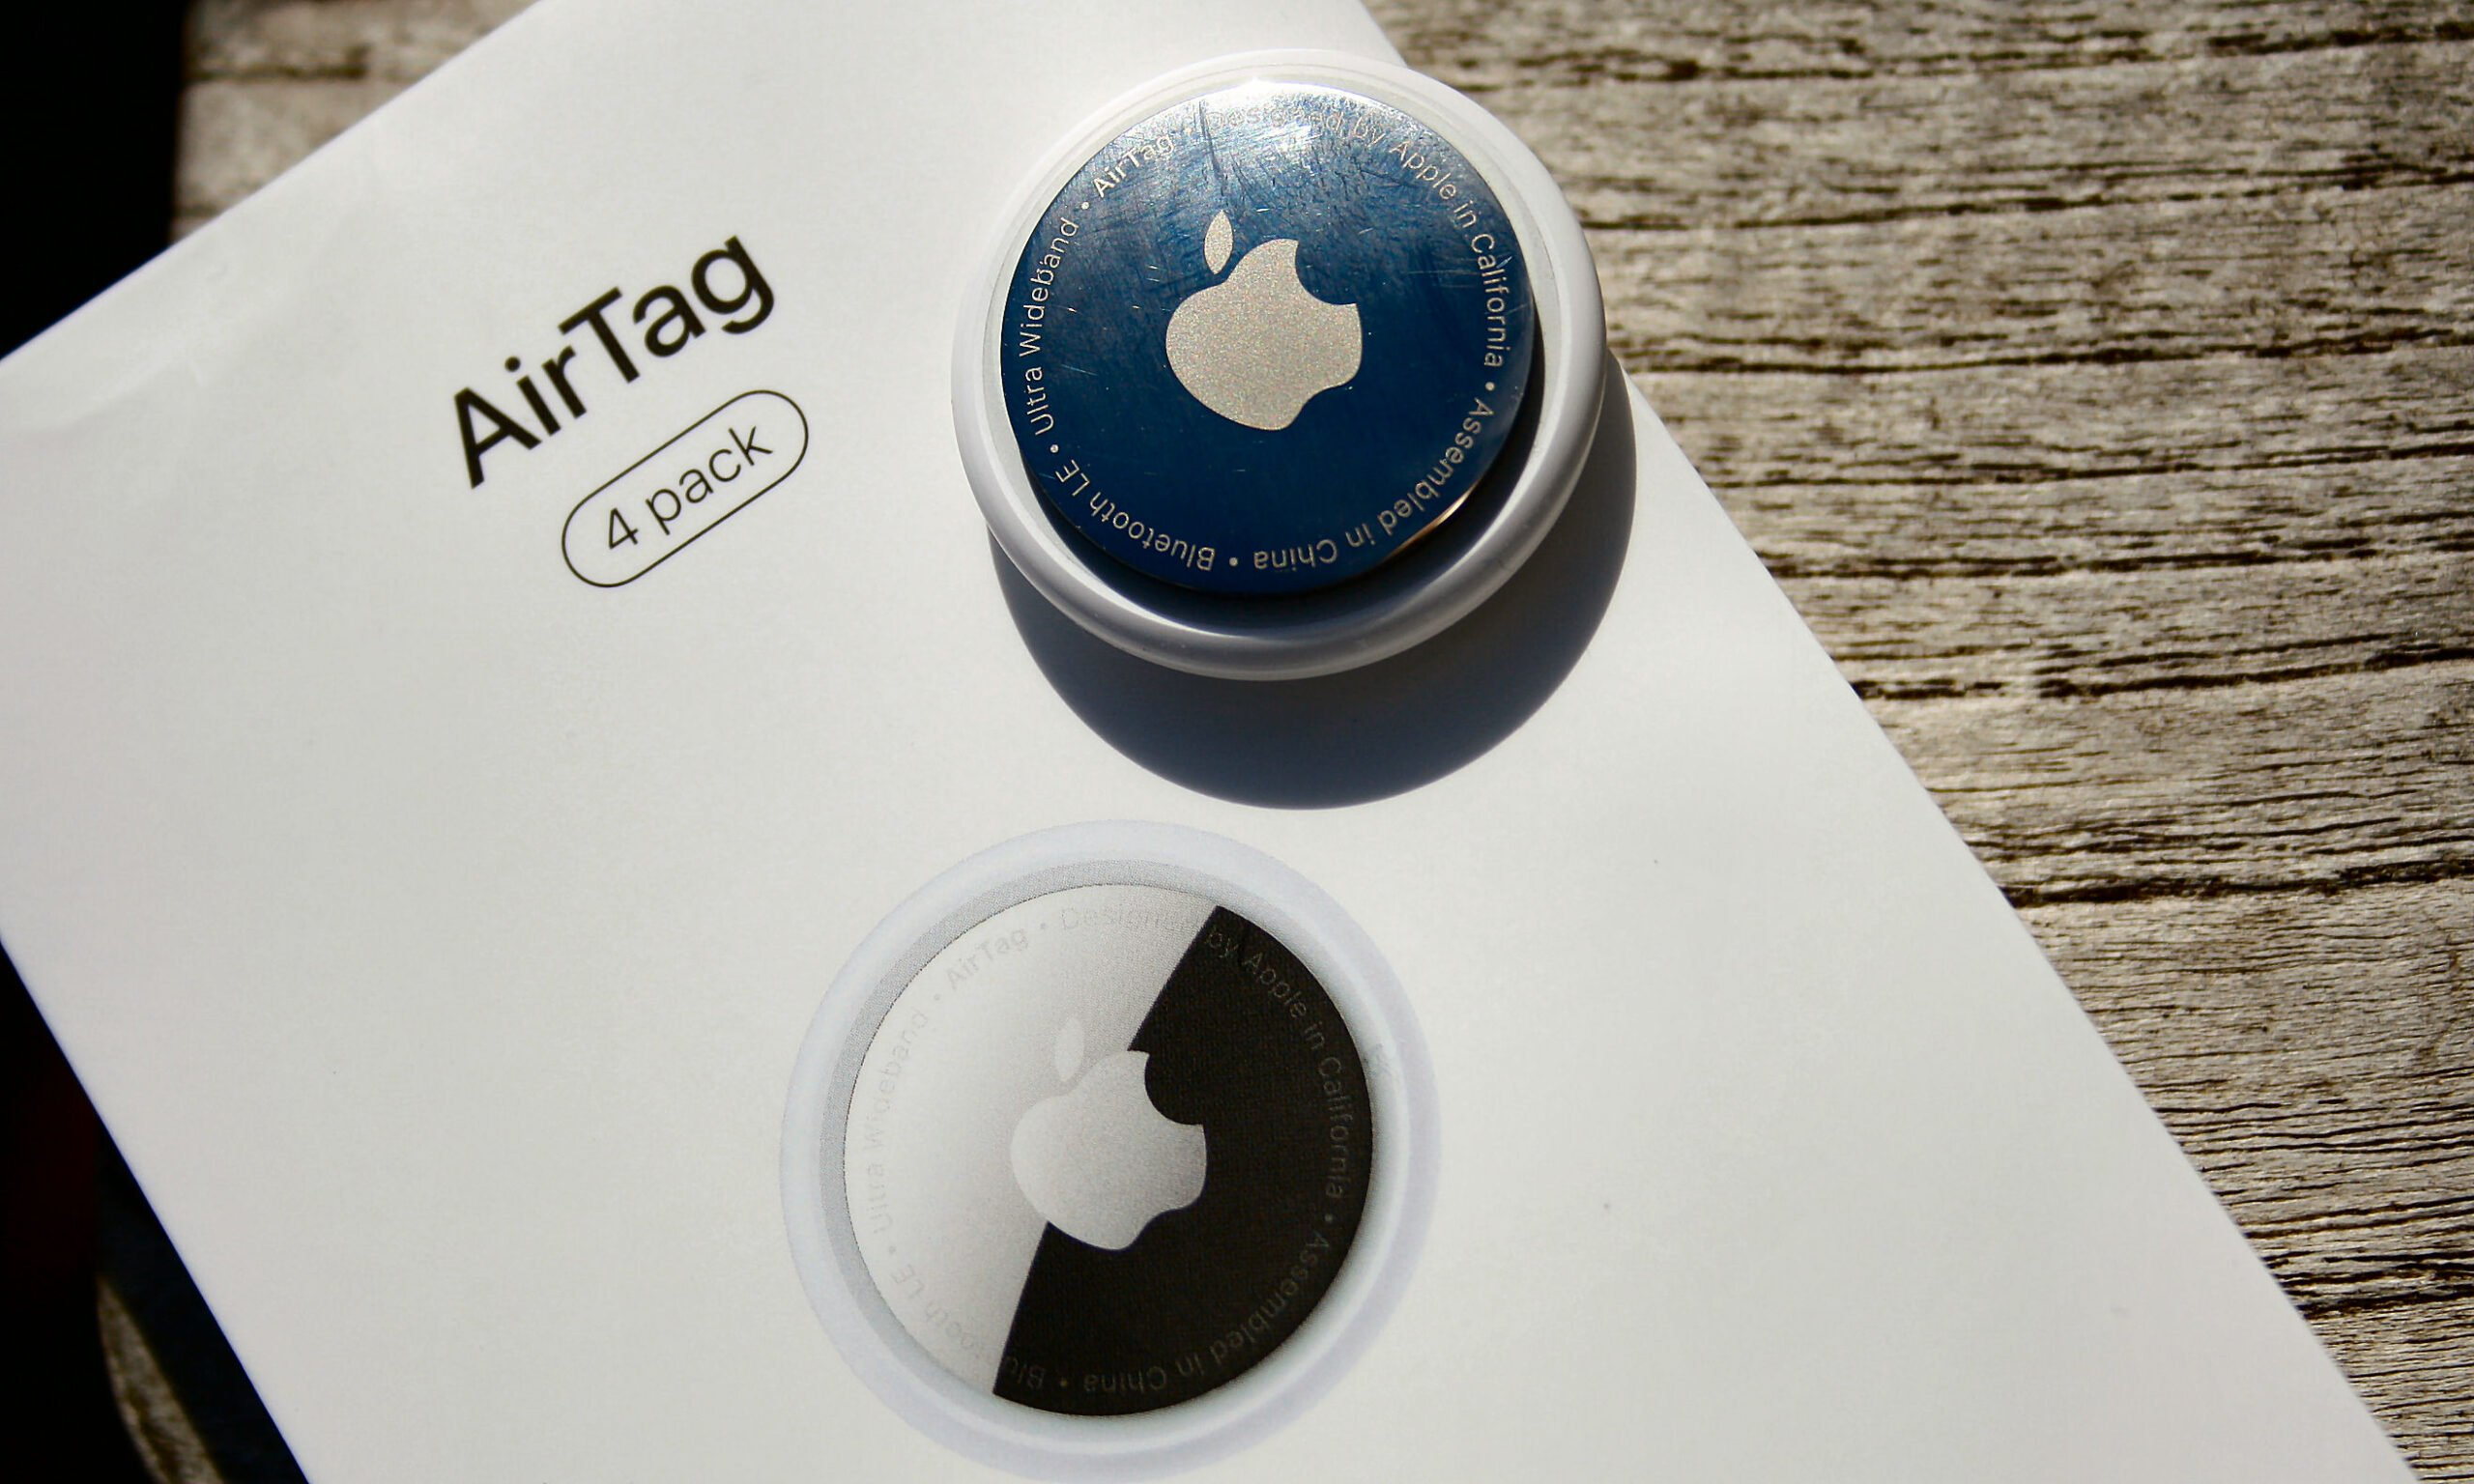 Apple AirTag 4 pack review